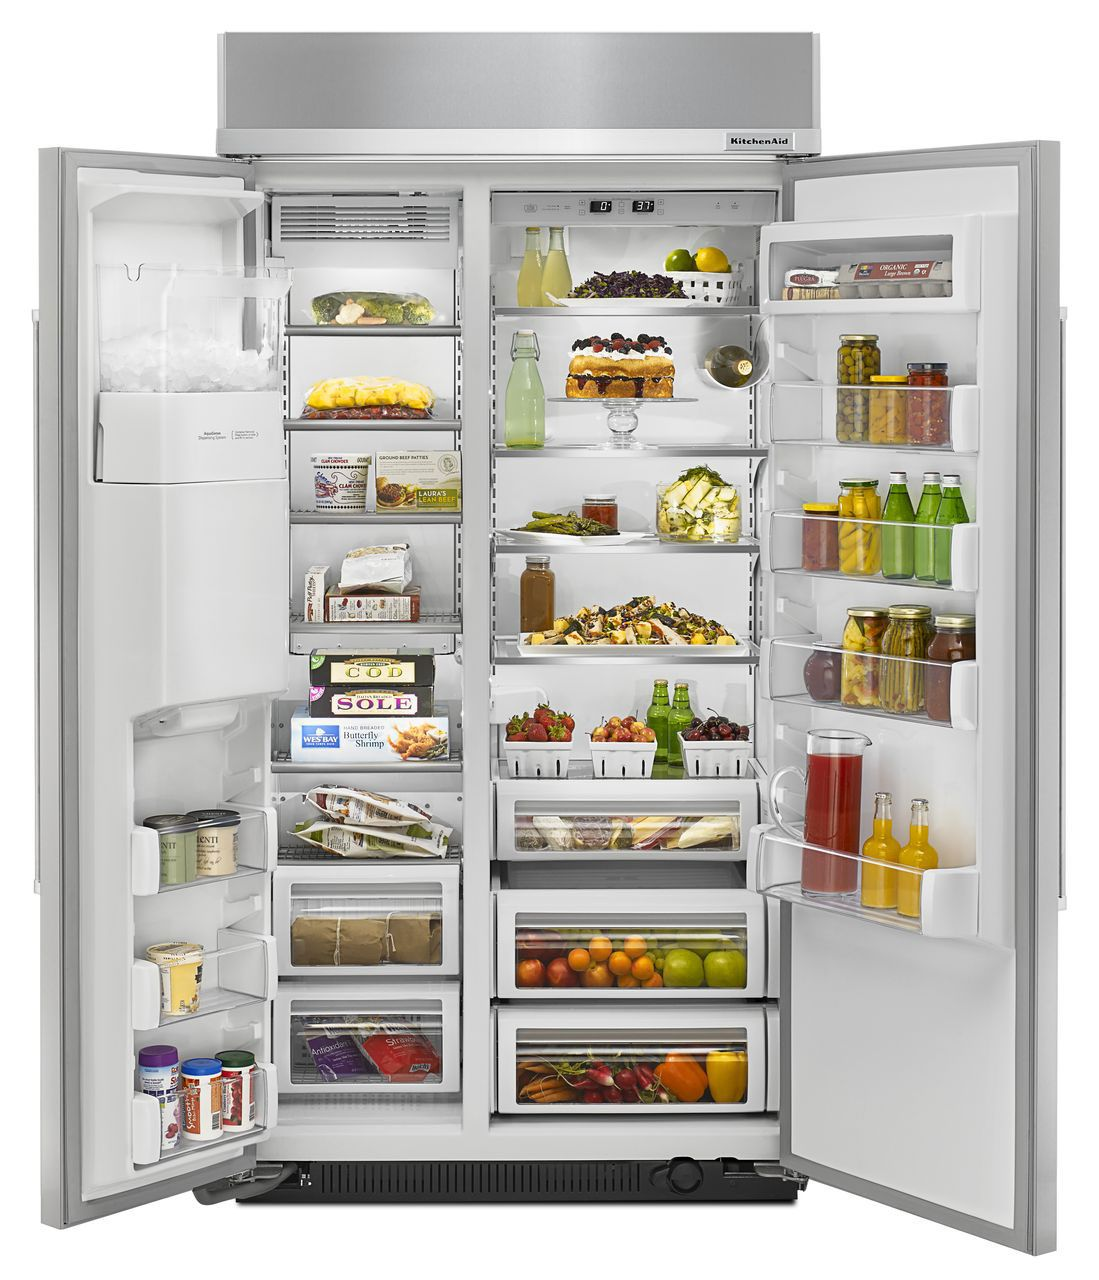 KitchenAid Built-In Side-By-Side Refrigerator KBSD612ESS